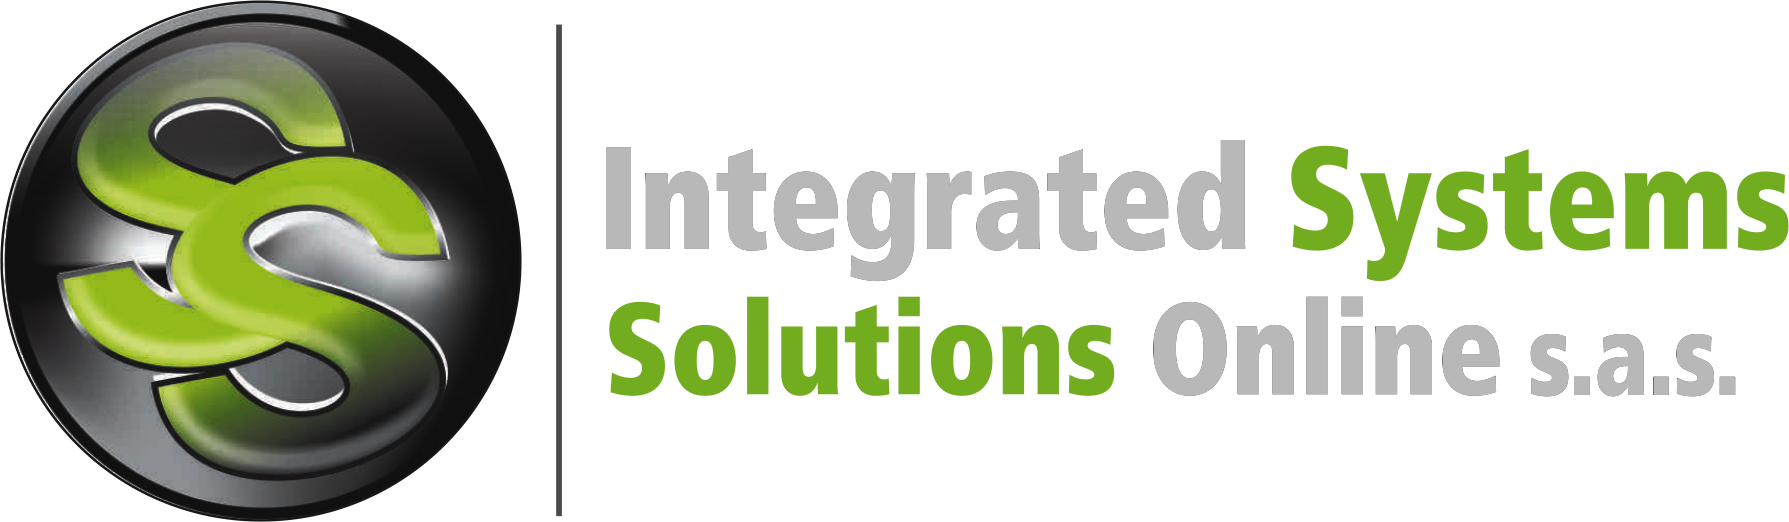 Integrated Systems Solutions Online S.A.S.